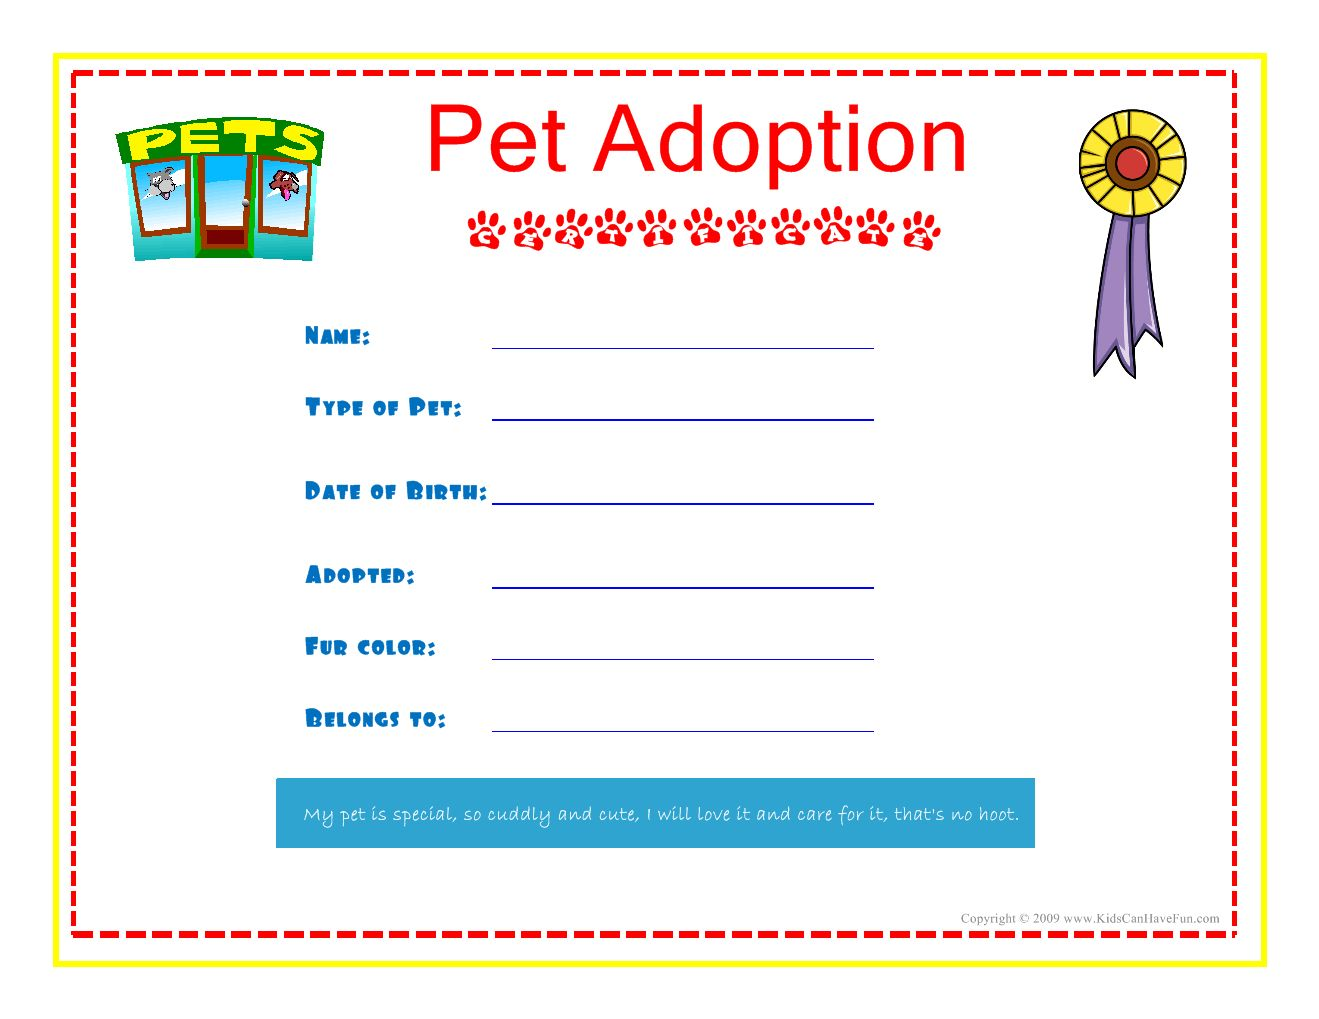 The Amazing Pet Adoption Certificate For The Kids To Fill Out About With Pet Adoption Ce Adoption Certificate Pet Adoption Certificate Dog Adoption Certificate Adopt a pet certificate template